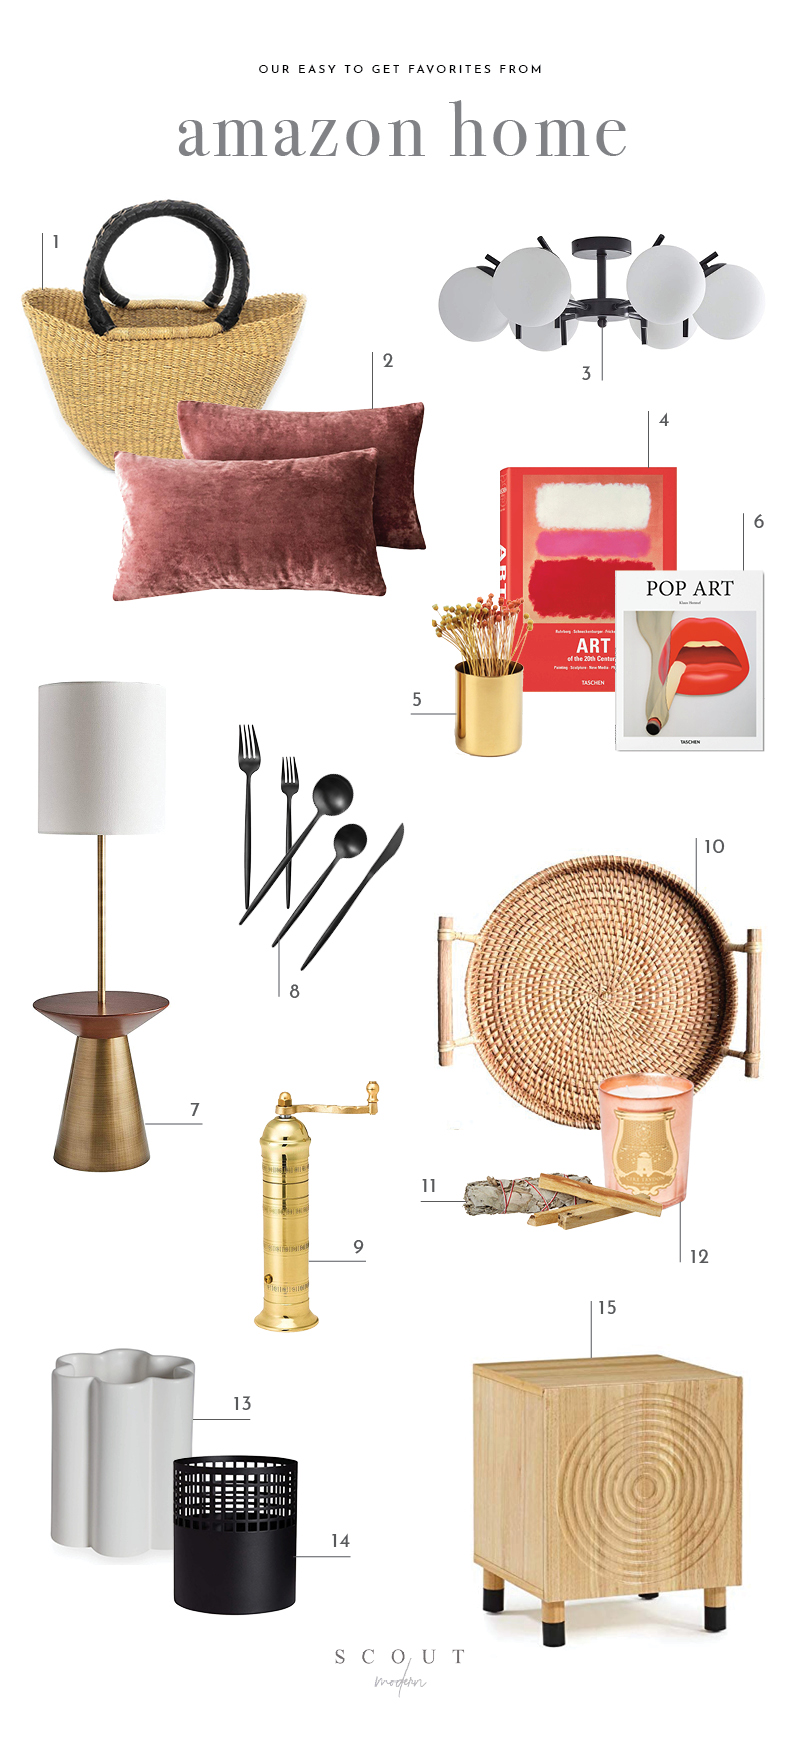 1.  Swahili Bolga Basket Shopper  | 2.  Velvet Pillow Covers  | 3.  6 Light Pendant  | 4.  Art of the 20th Century Book  | 5.  Gold Pencil Cup Holder  | 6.  Pop Art Book  | 7.  Floor Lamp  | 8.  Black Modern Cutlery  | 9.  Pepper Mill  | 10.  Hand Woven Rattan Tray  | 11.  Palo Santo Sticks & Sage Bundle  | 12.  Rose Gold Ernesto Candle  | 13.  Cloud Vase  | 14.  Gridded Vase  | 15.  Accent Table